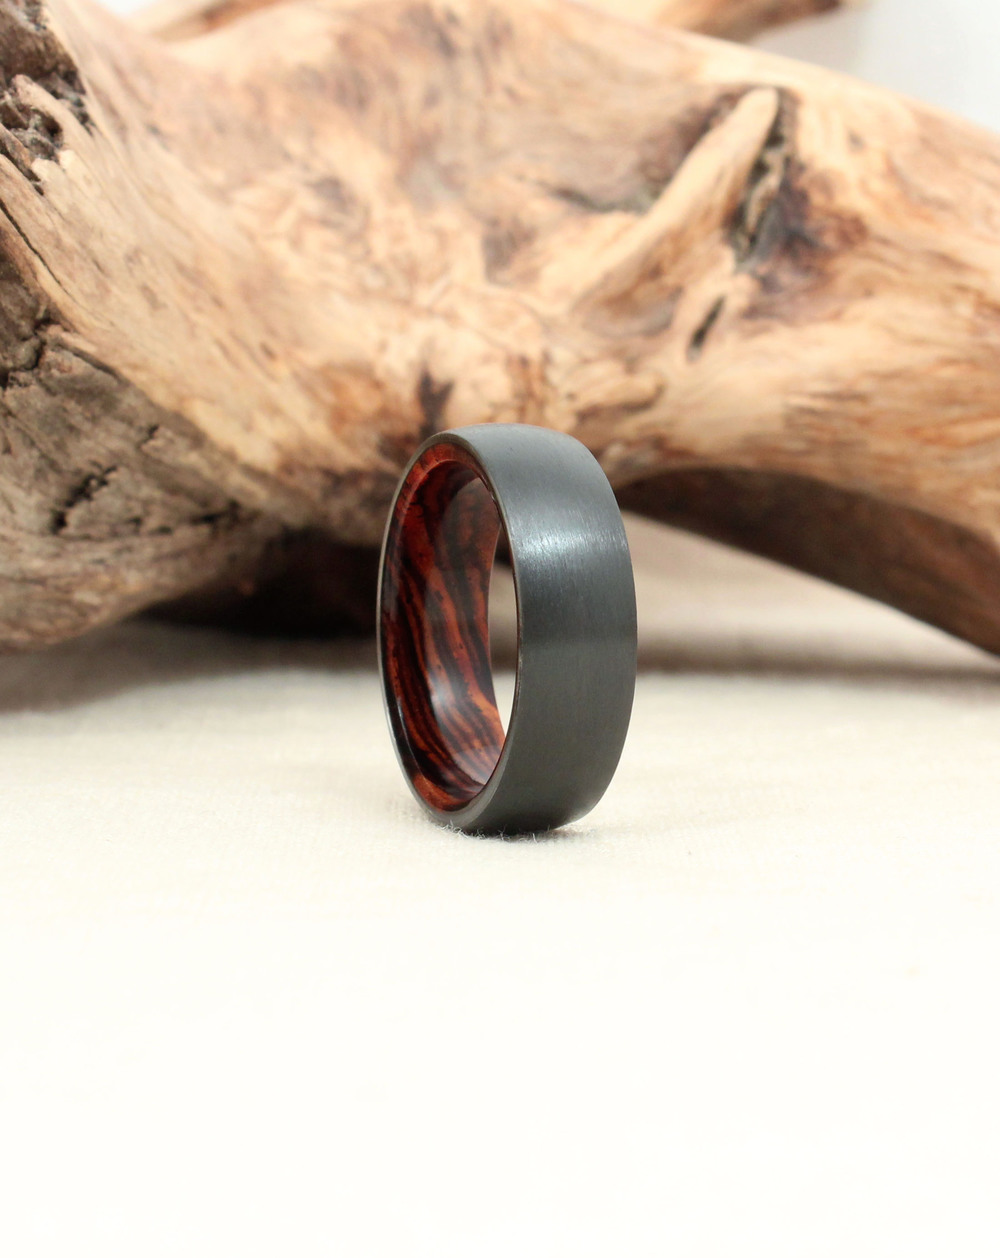 Black Zirconium and Cocobolo Wood Ring